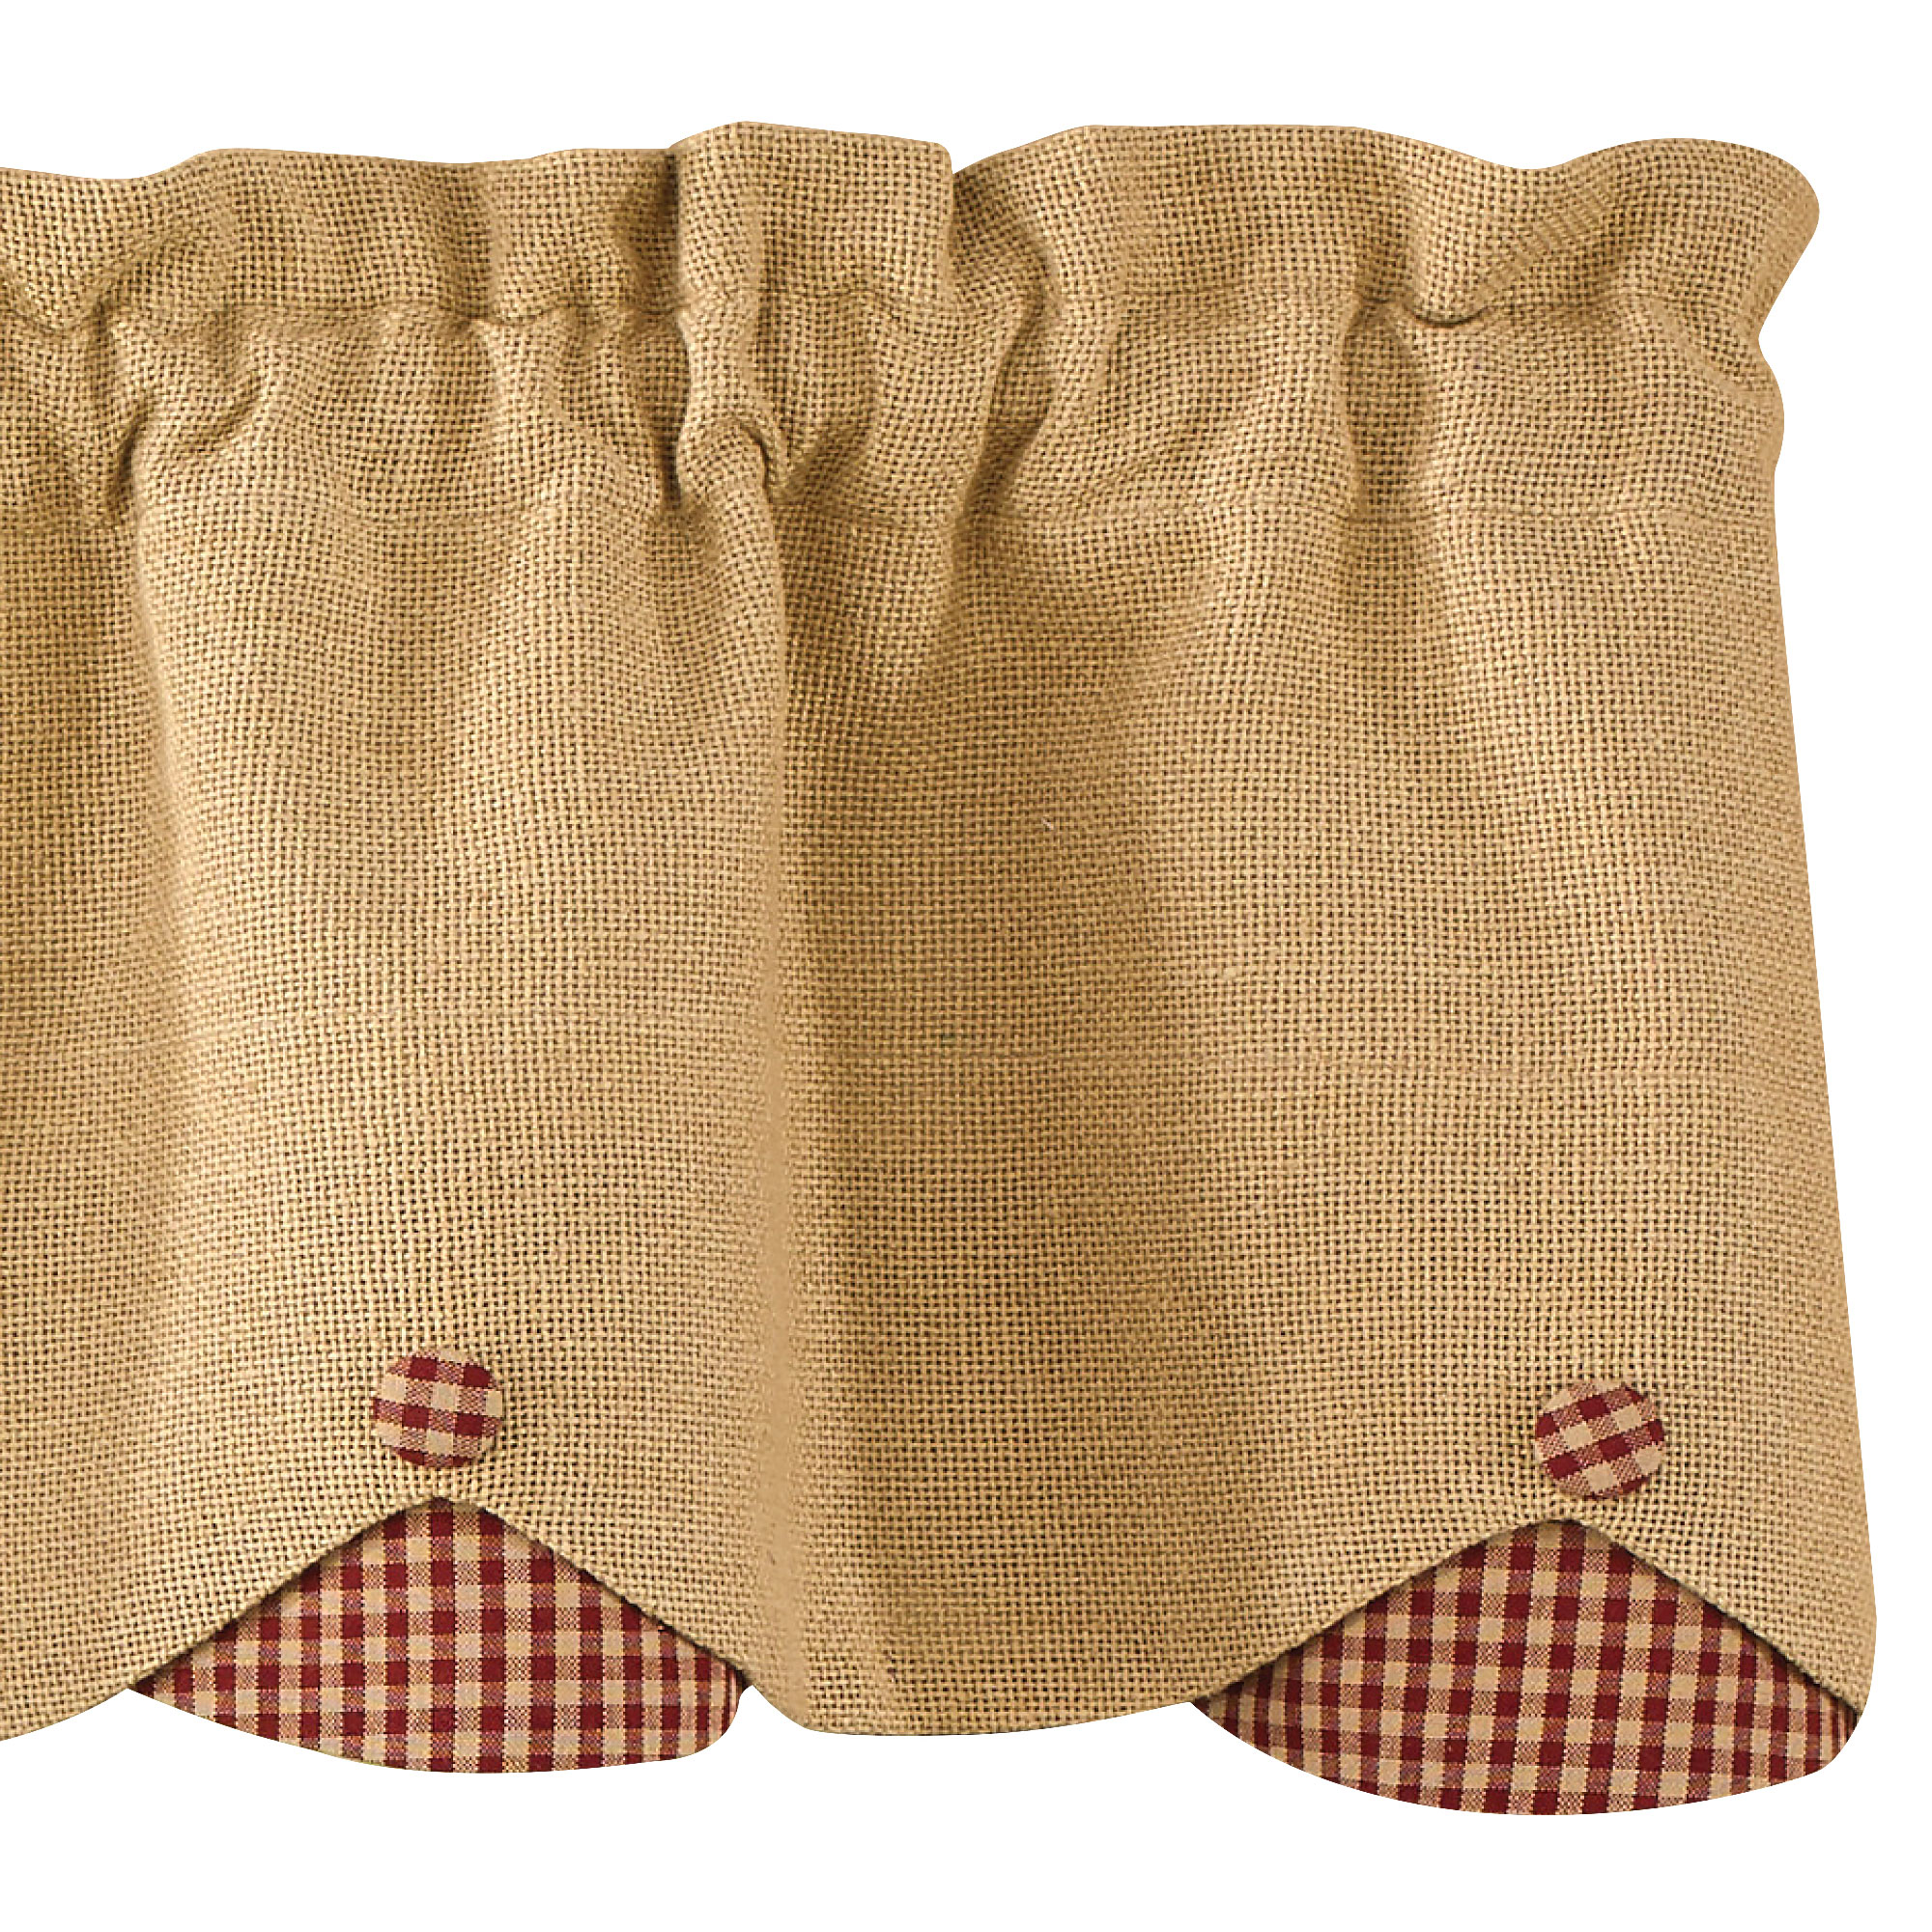 Burlap and Check Scalloped Curtain Valance by Park Designs Black or Wine